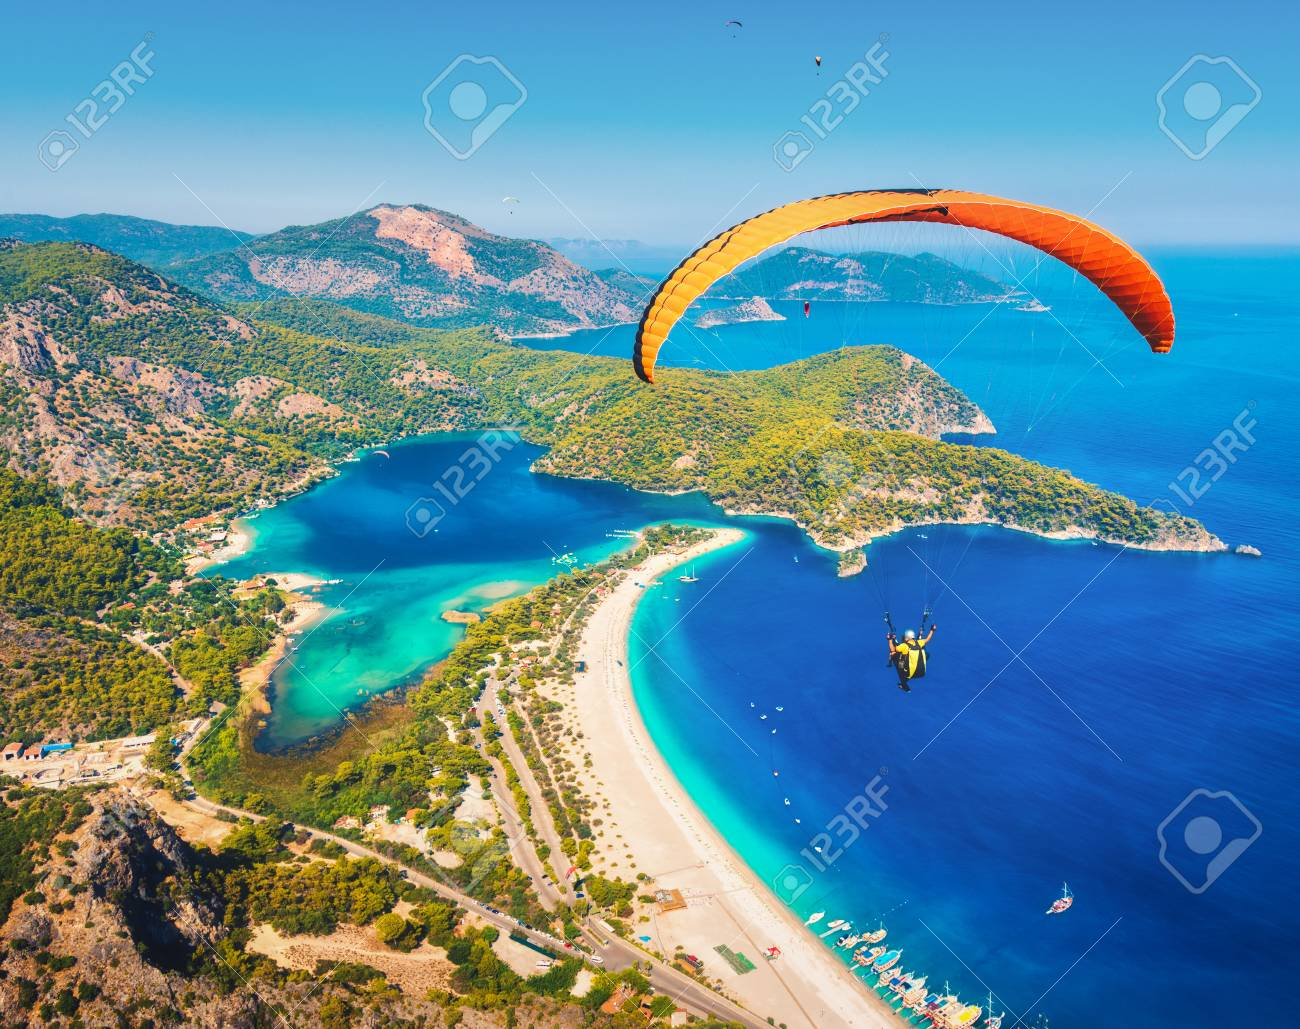 Paragliding in the sky  Paraglider tandem flying over the sea